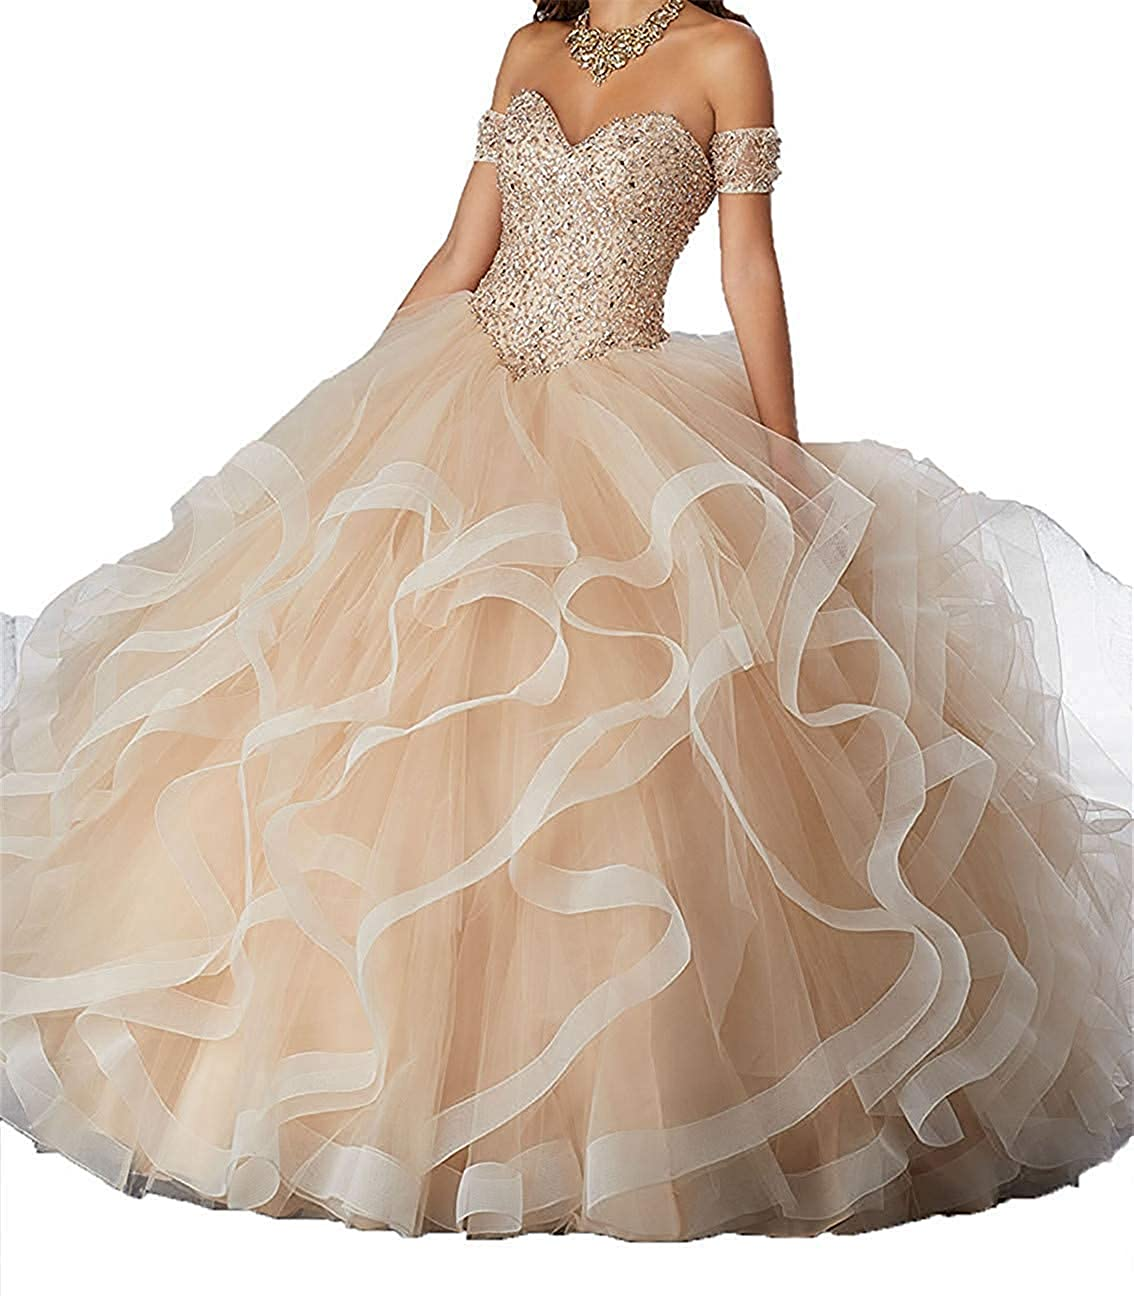 Champagne ASBridal Quinceanera Dress Sweet 16 Formal Prom Party Dresses Crystals Beaded Ball Gowns